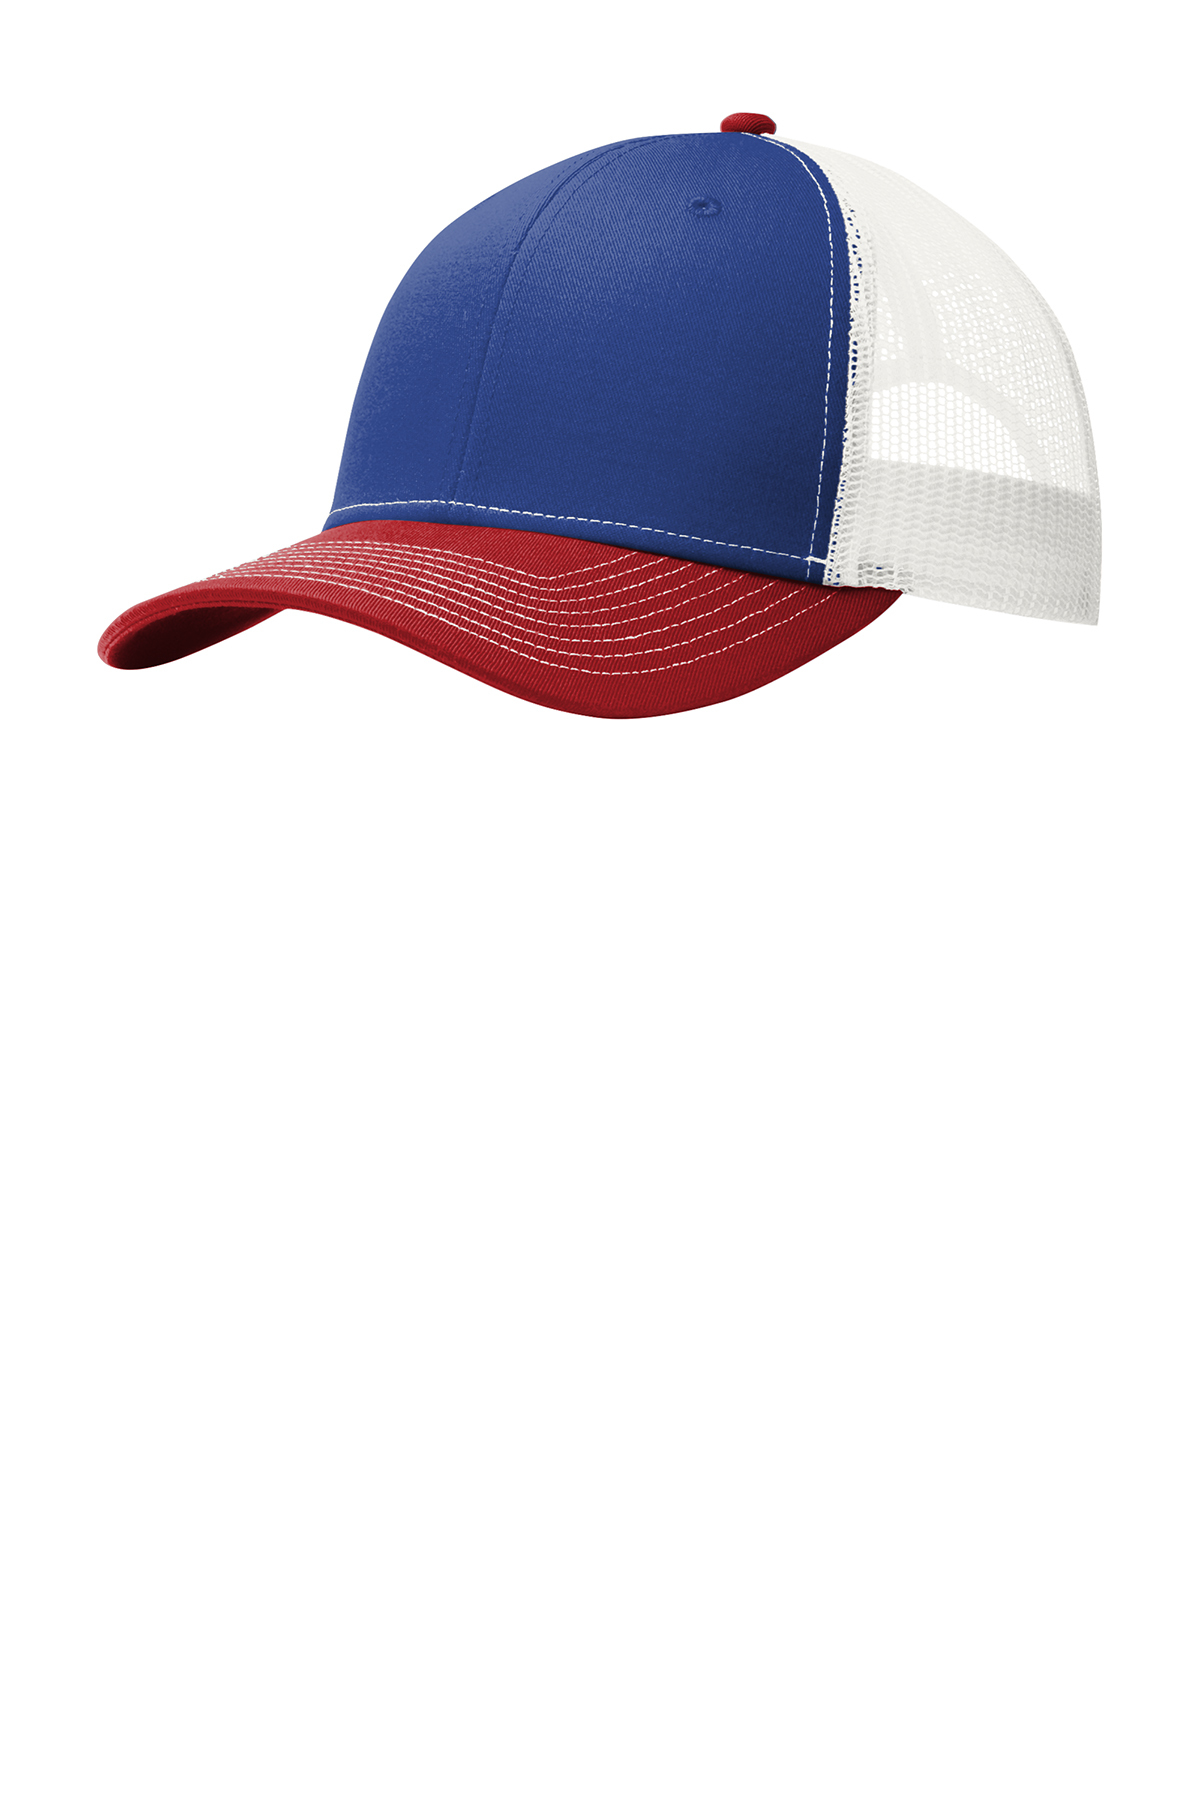 click to view Patriot Blue/ Flame Red/ White